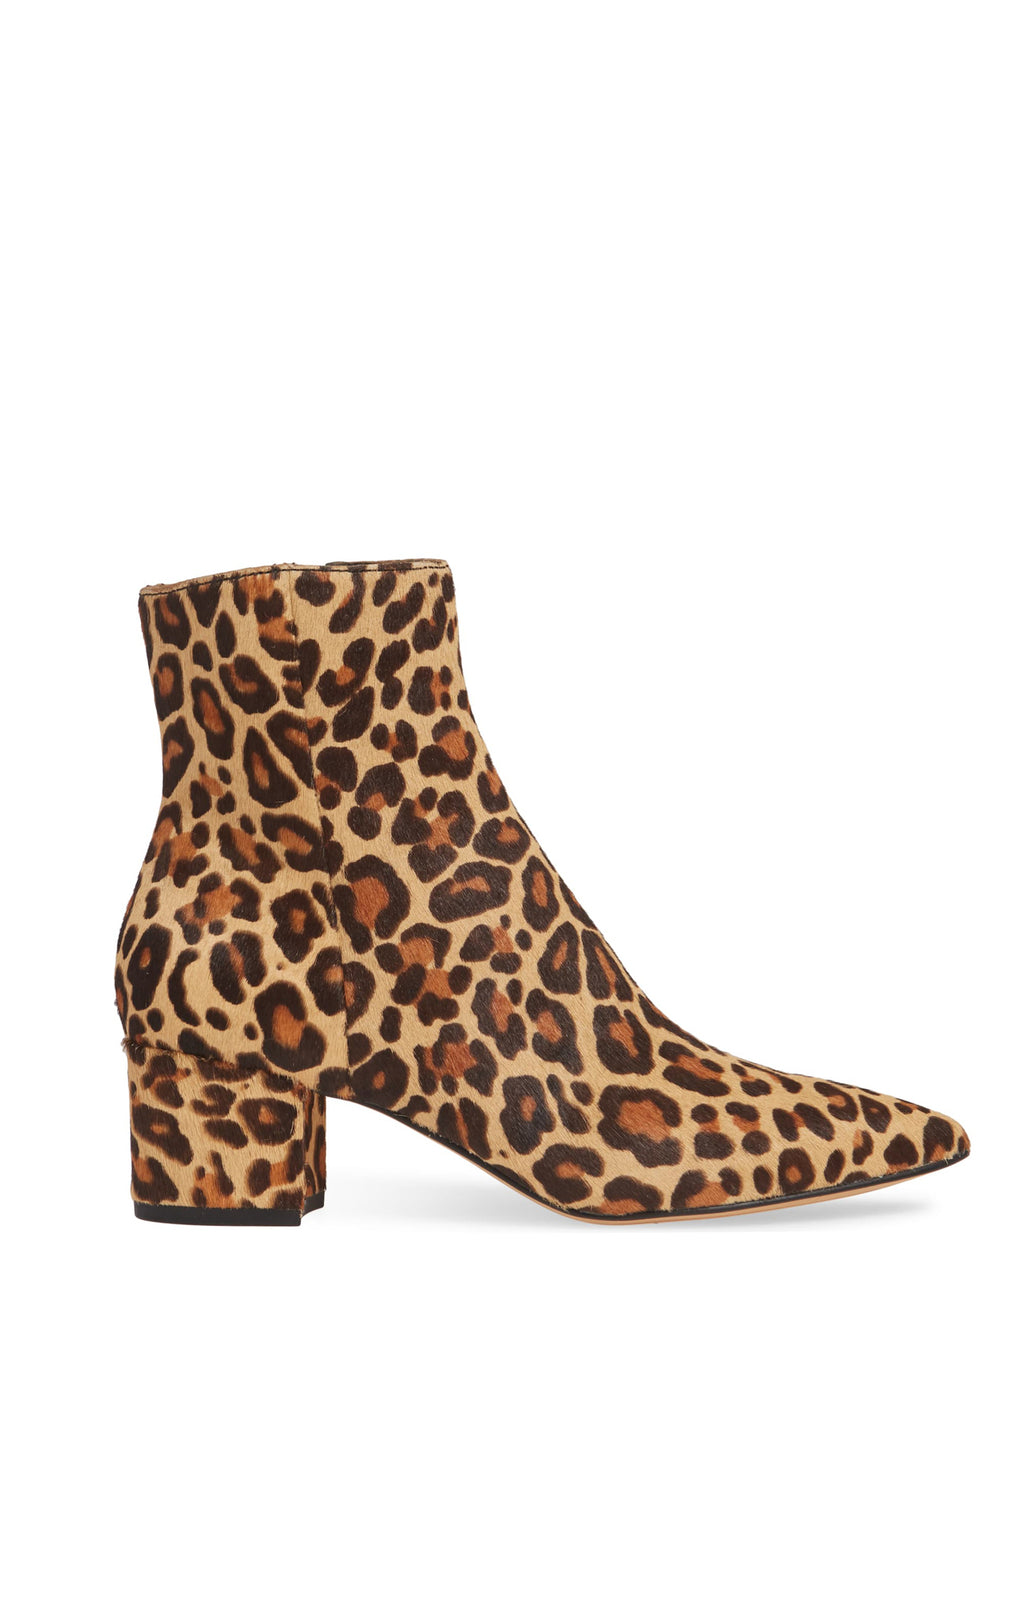 BEL ANKLE BOOTIE IN CALF HAIR